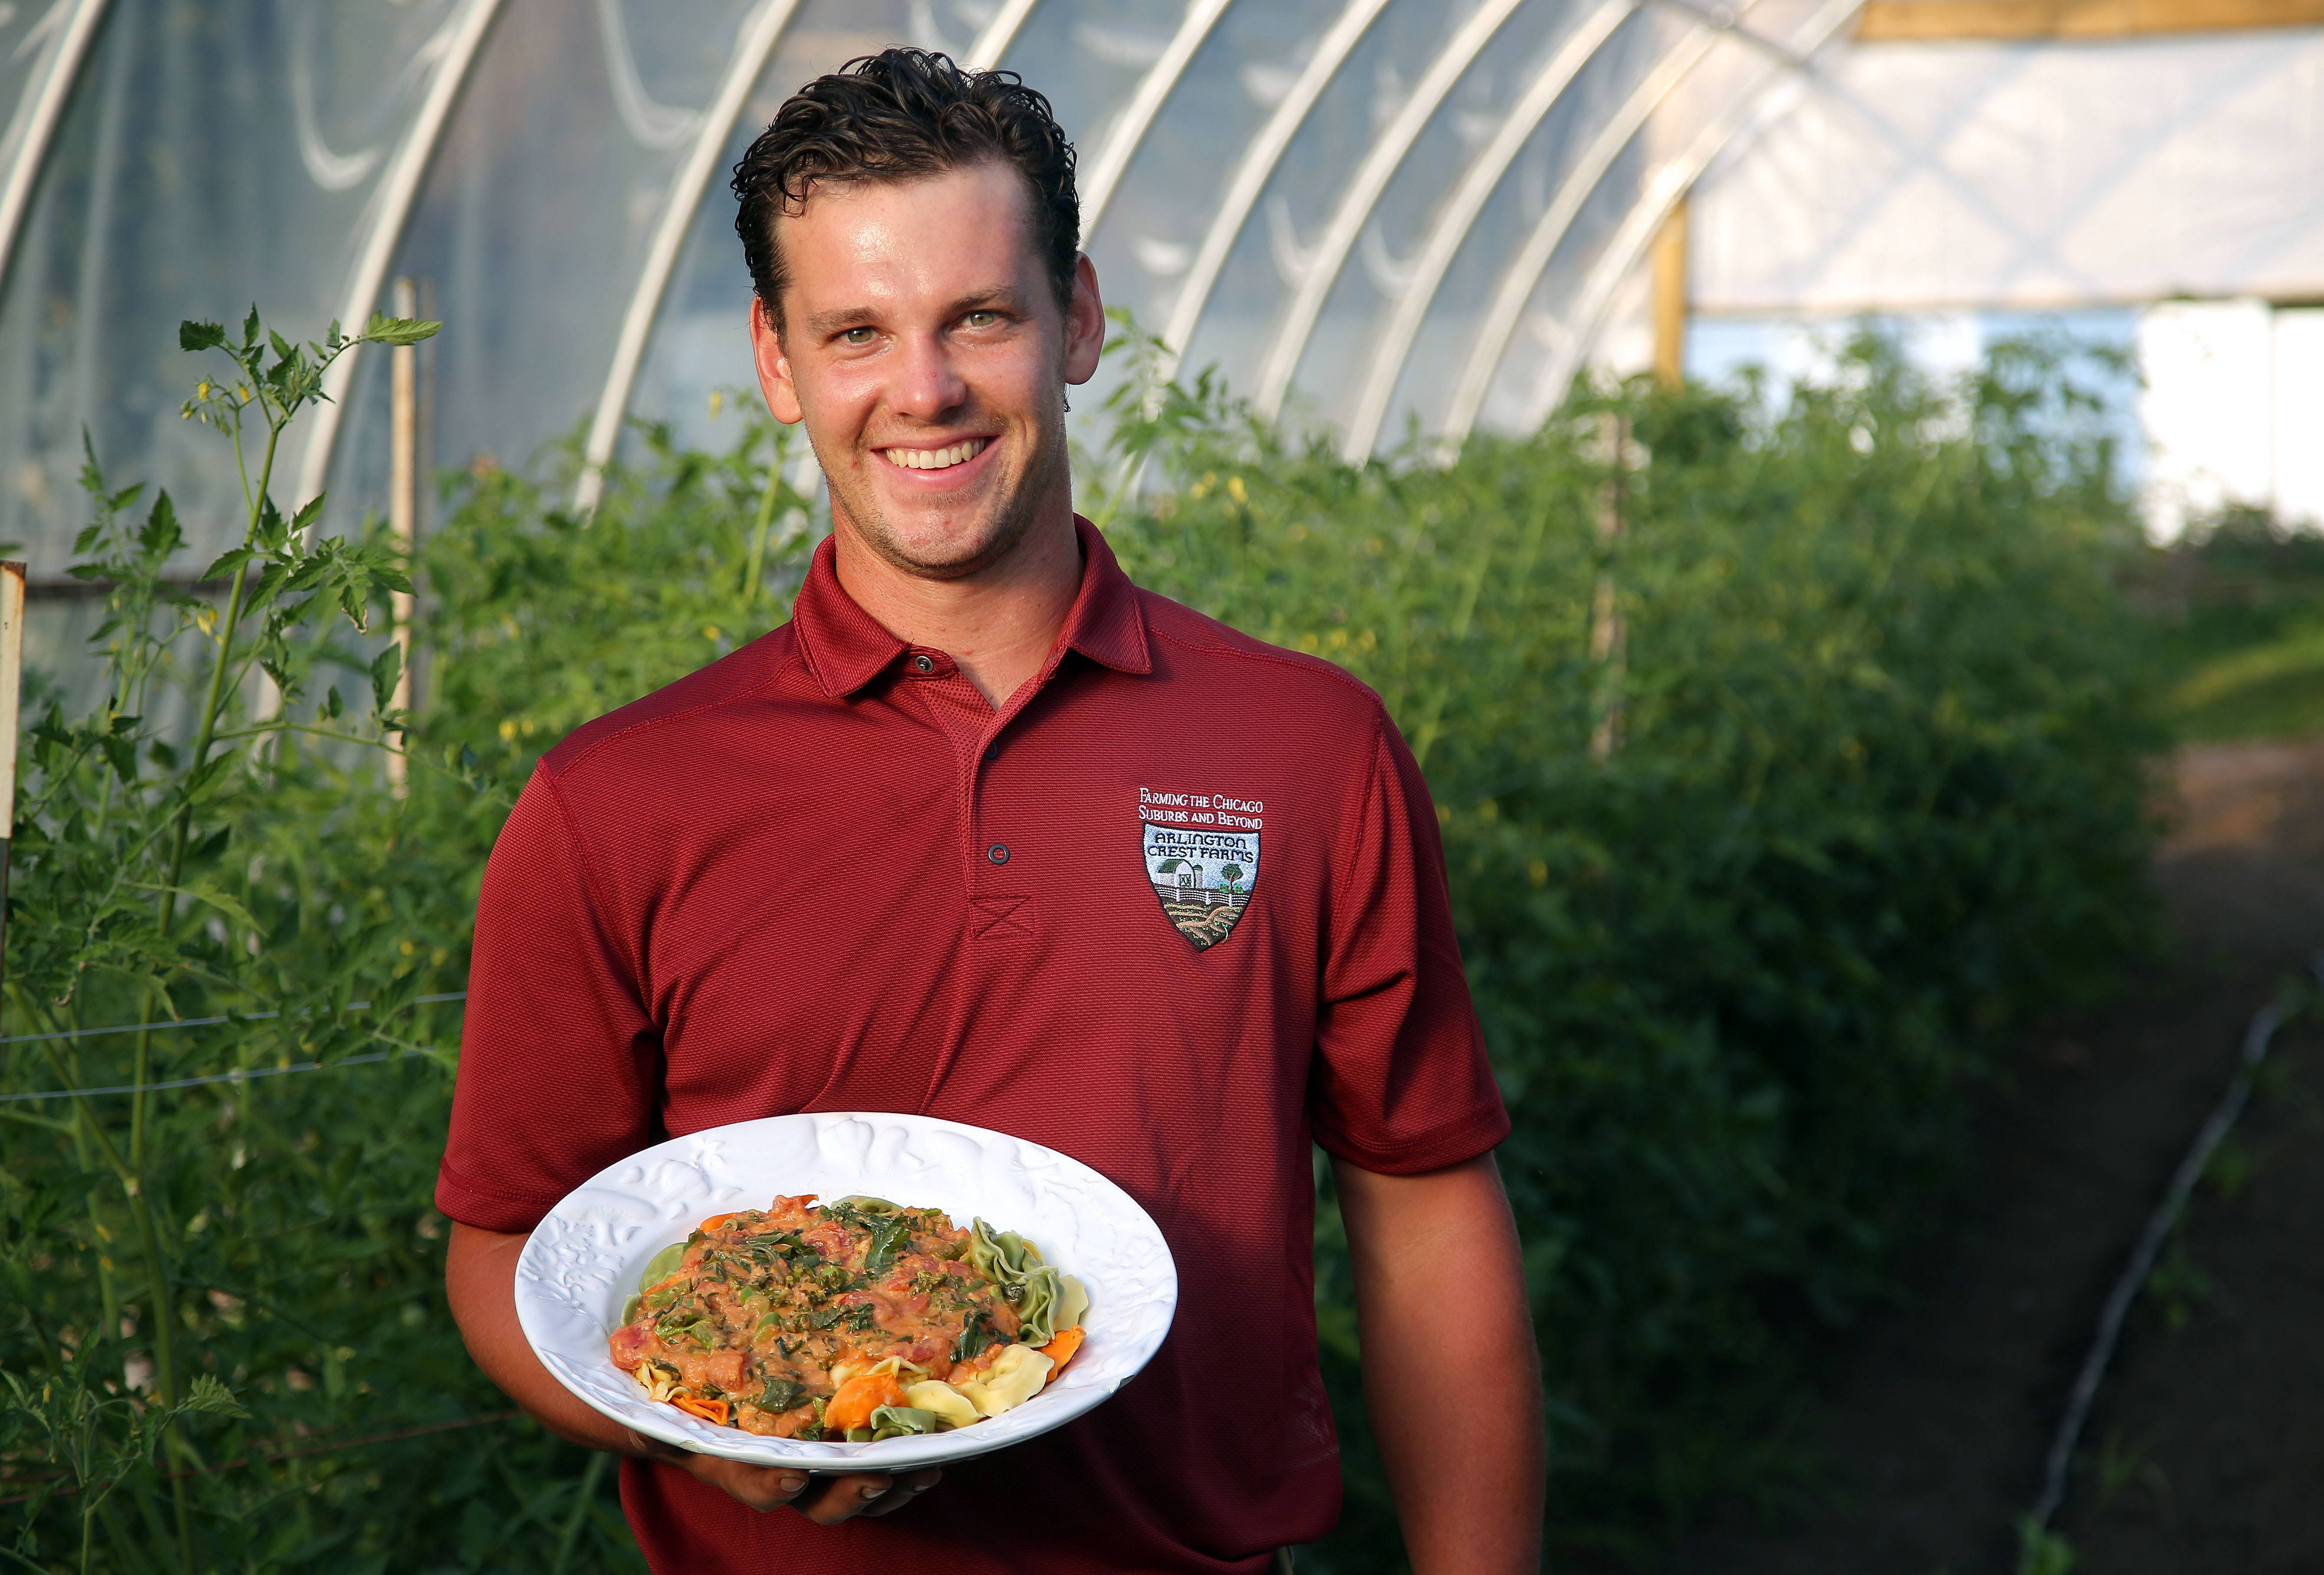 Wanting to eat and cook with good food, Lake Zurich man turns to farming